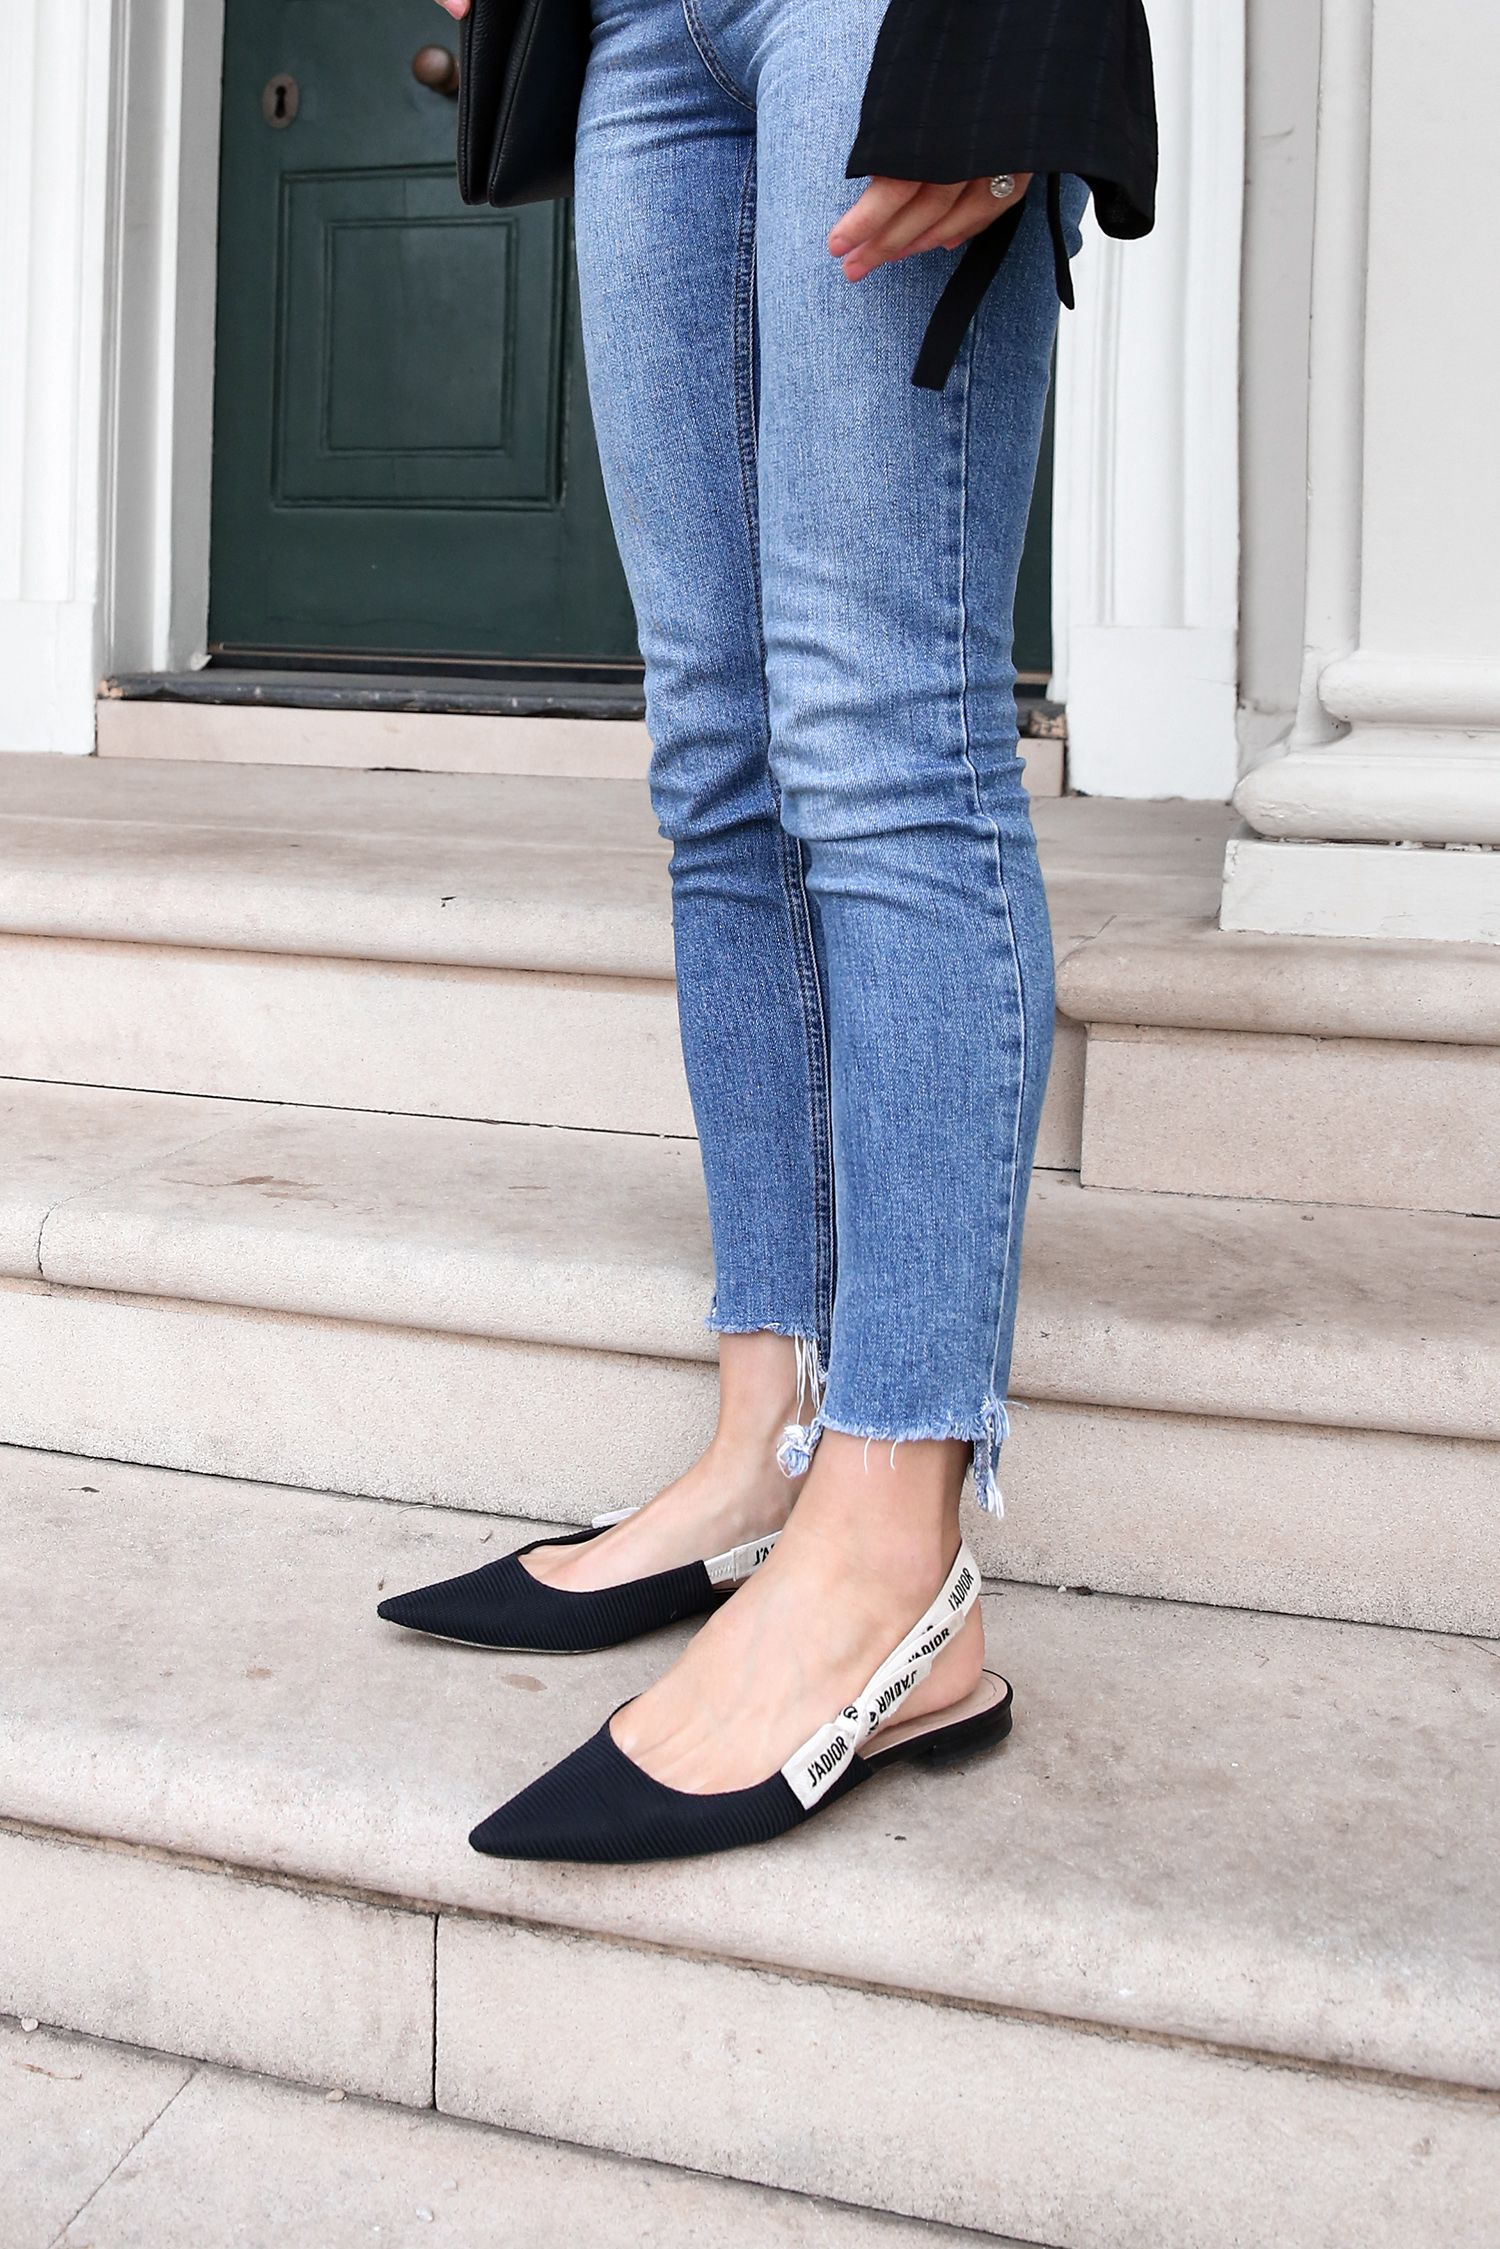 21+ Dior Slingback Outfit Pictures